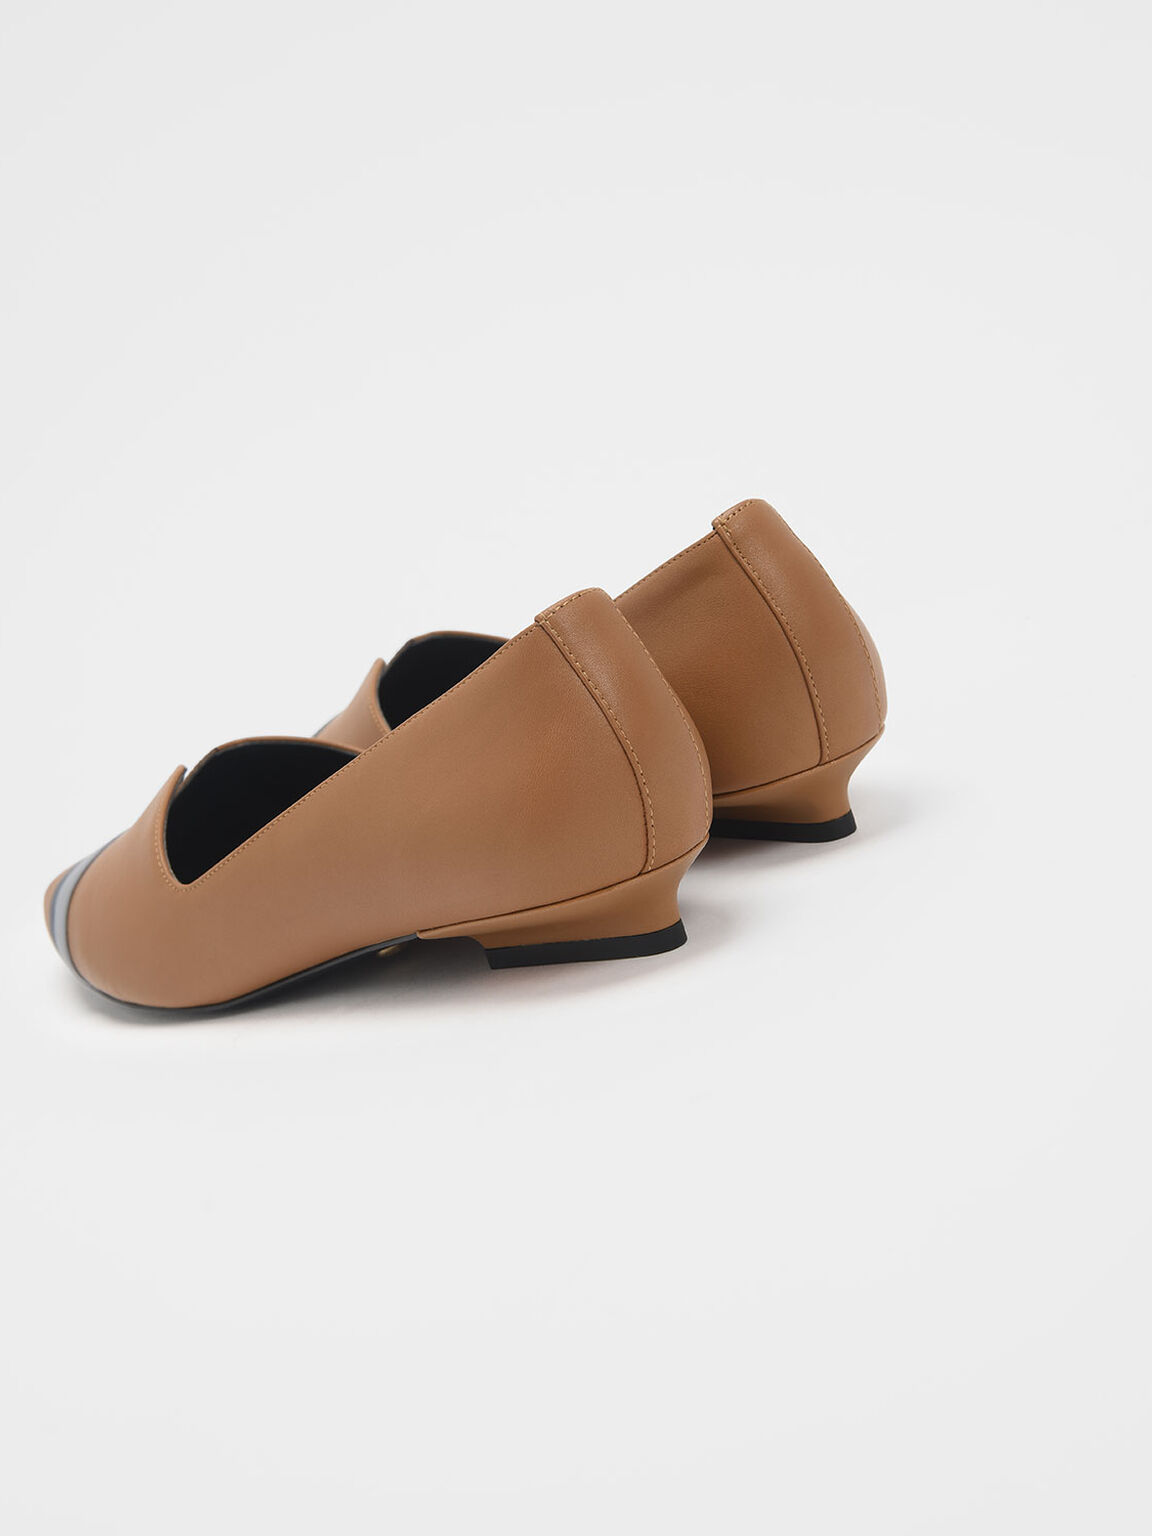 Striped Leather Ballerina Flats, Caramel, hi-res